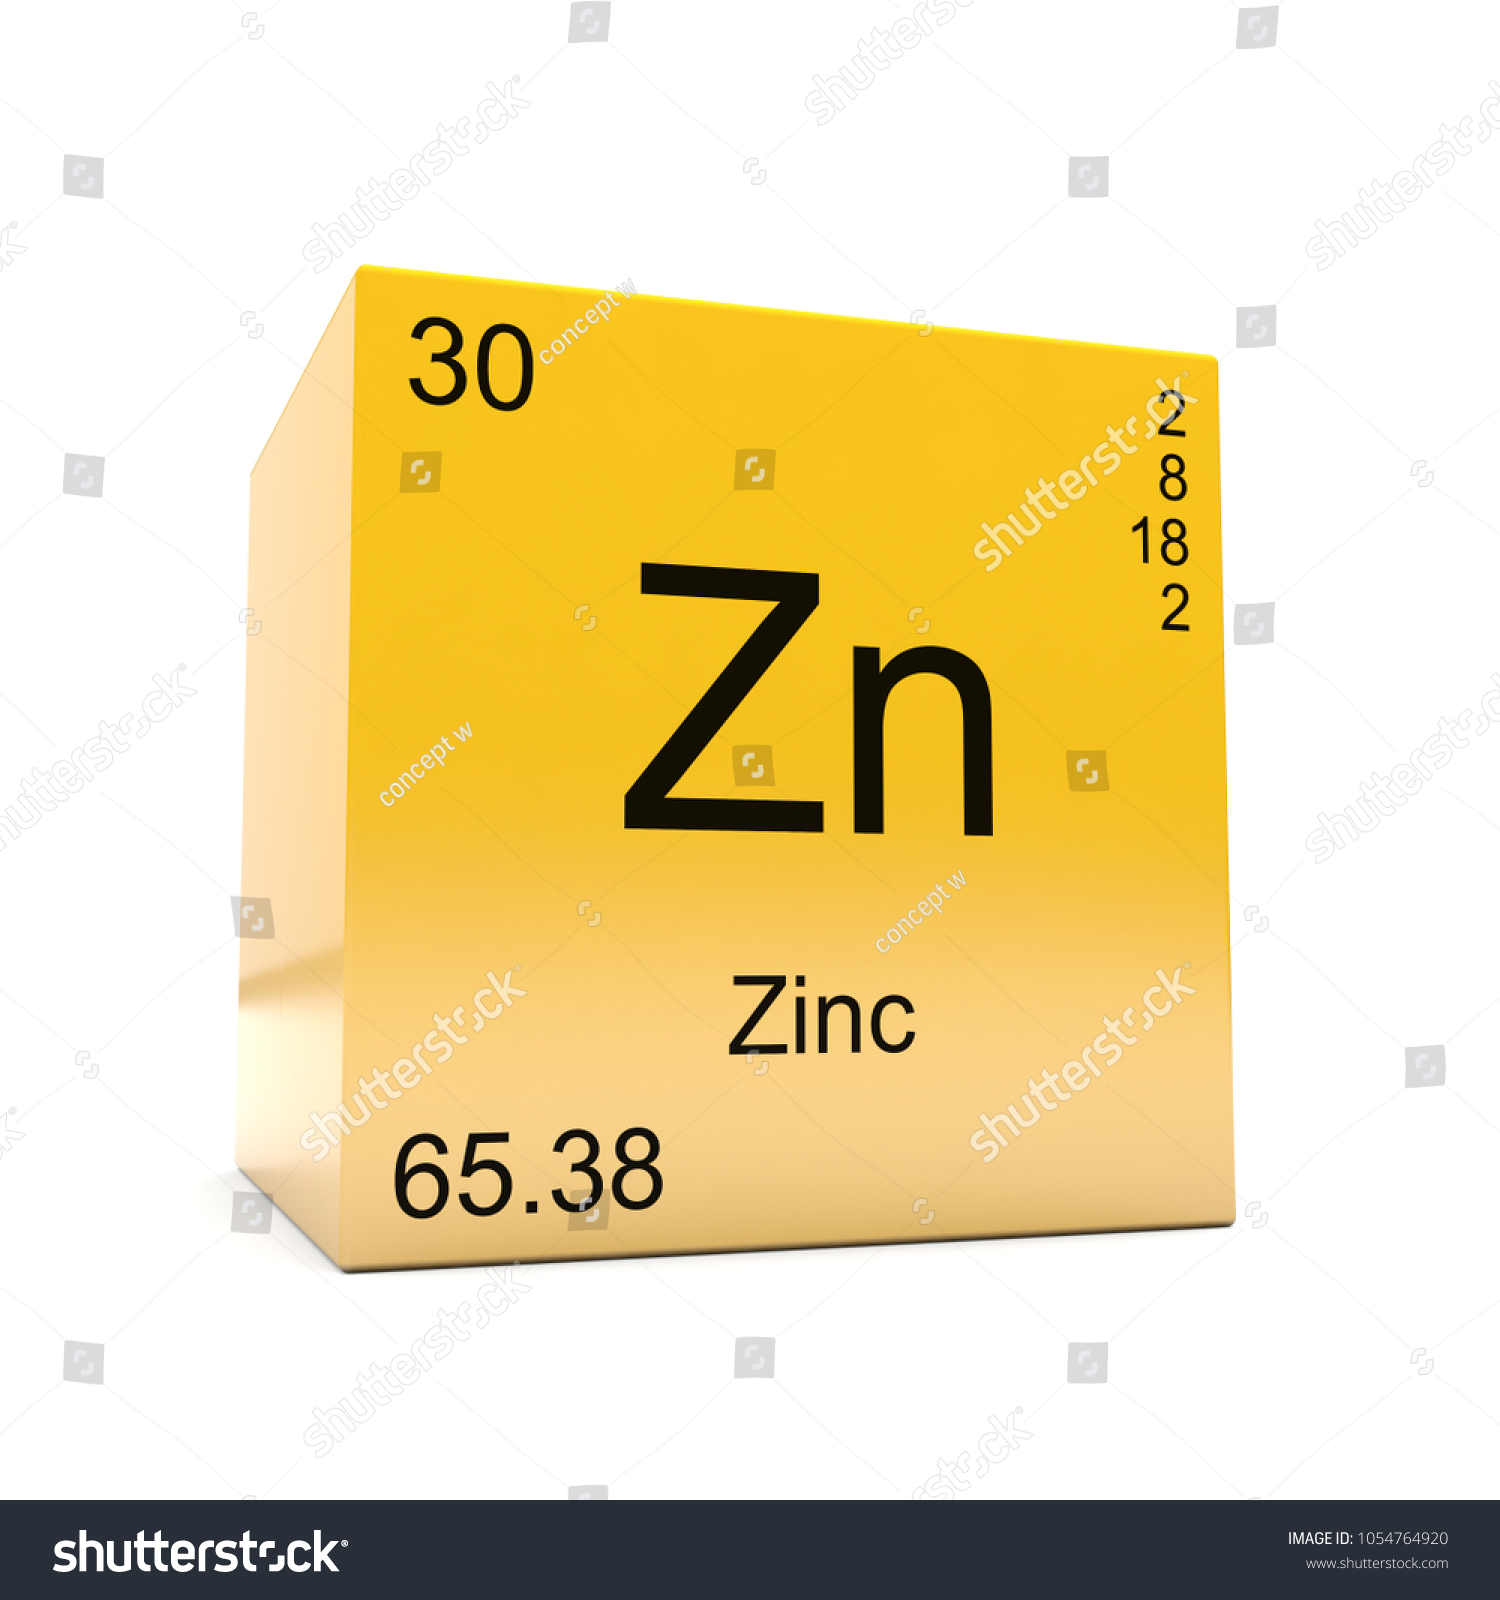 Awesome Zinc Periodic Table Concept Contemporary - Best Image Engine ...